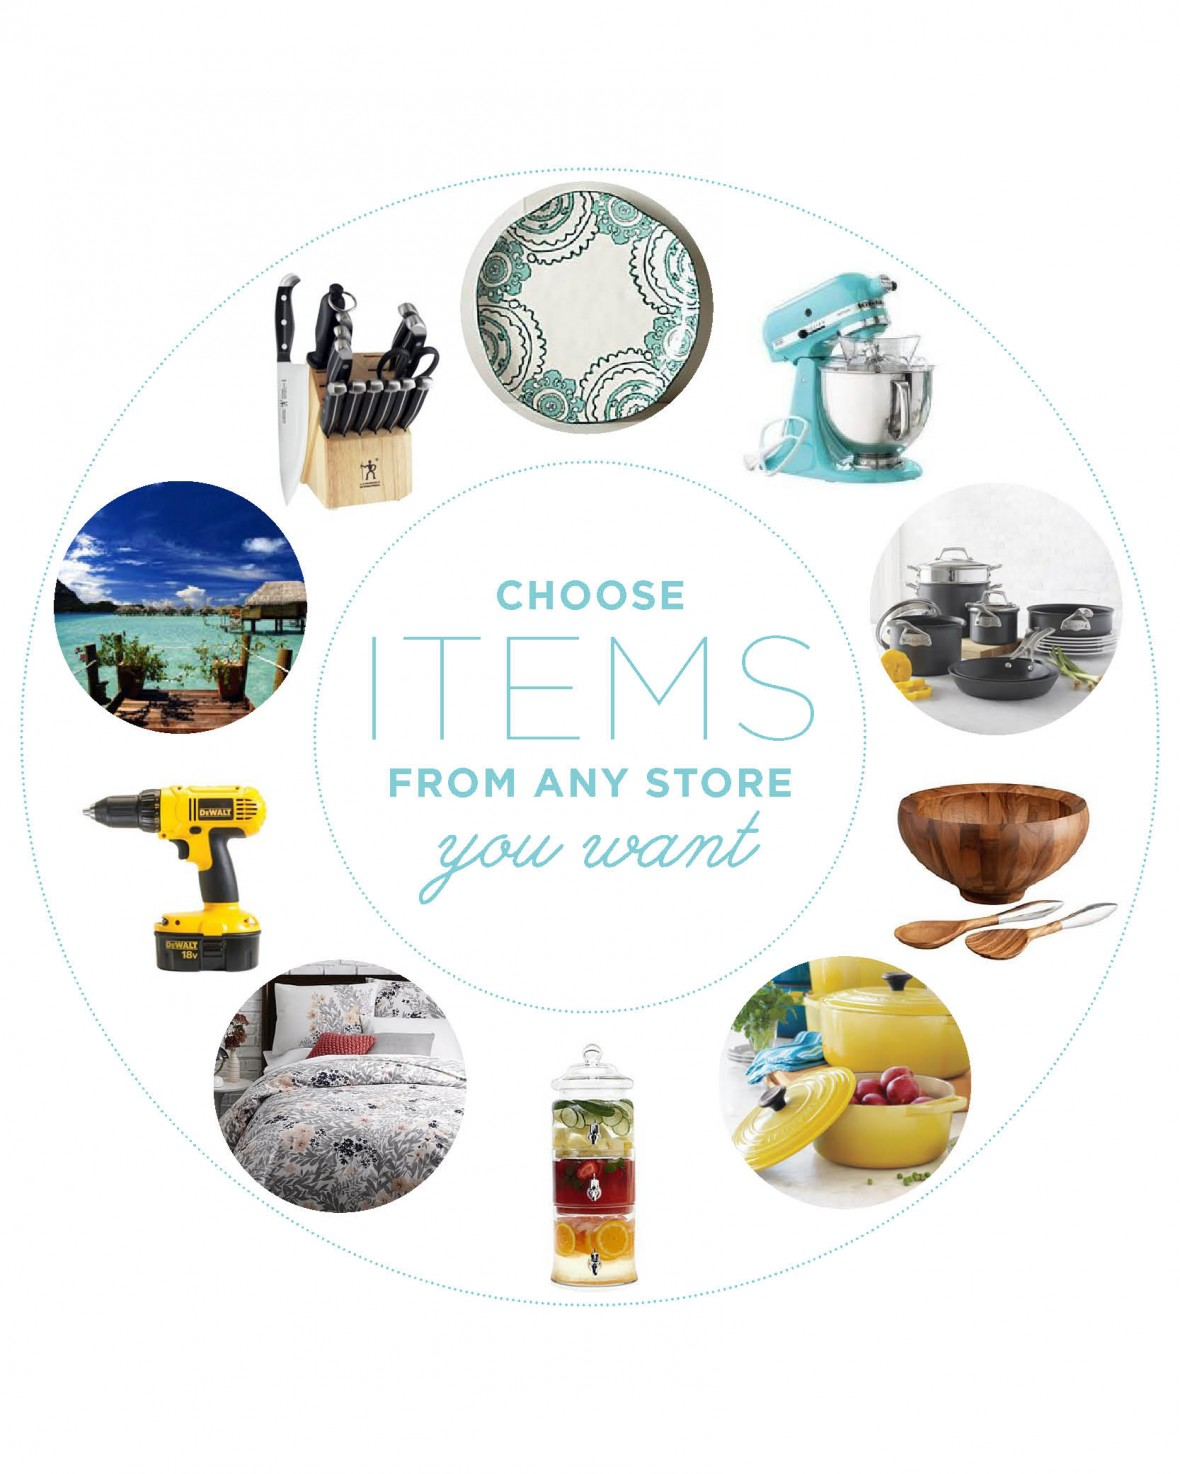 My Registry allows you to register at all your favorite stores and combine all the items into one convenient wish list!